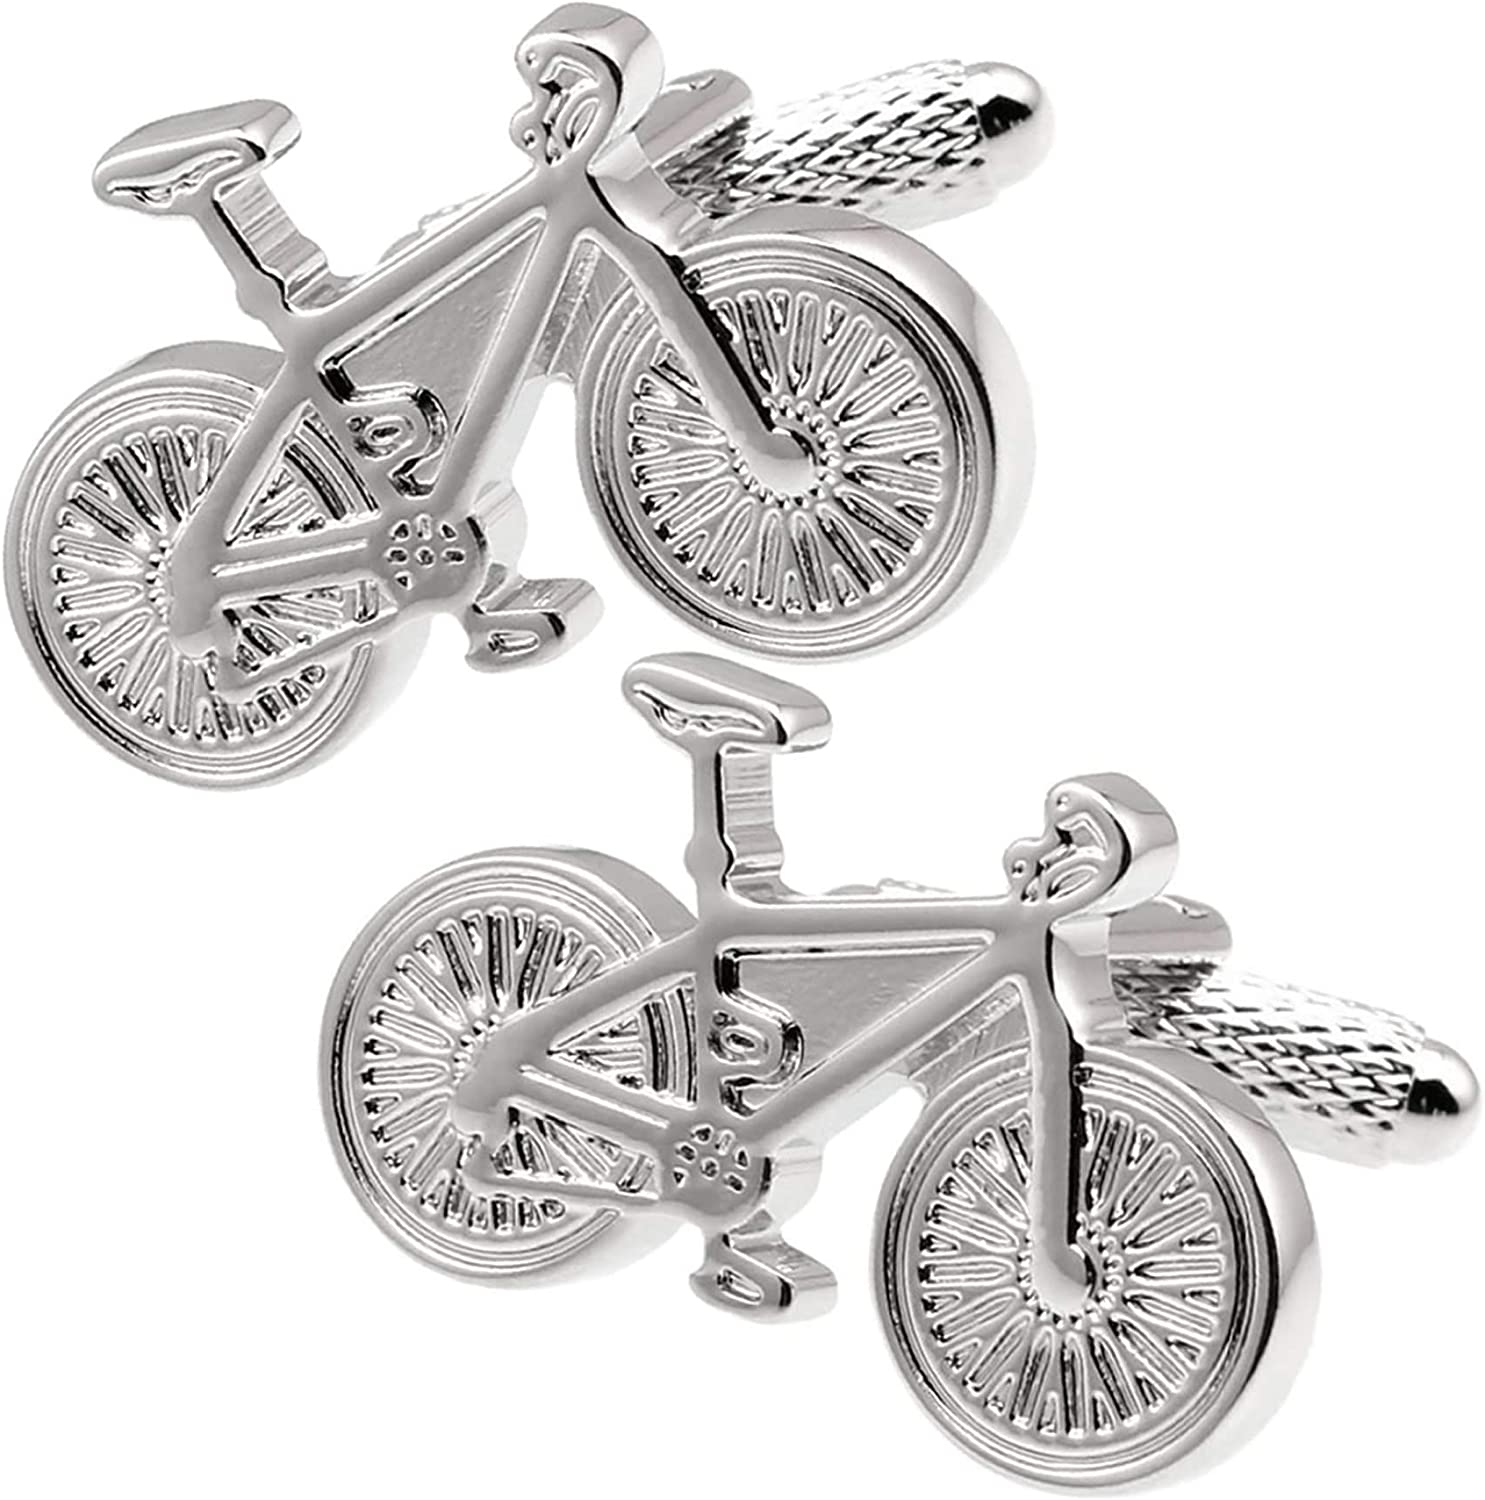 Thot Opening large release sale Ra Black Bike Bicycle Biker Spring new work For Men Cufflinks A-826 Mod.